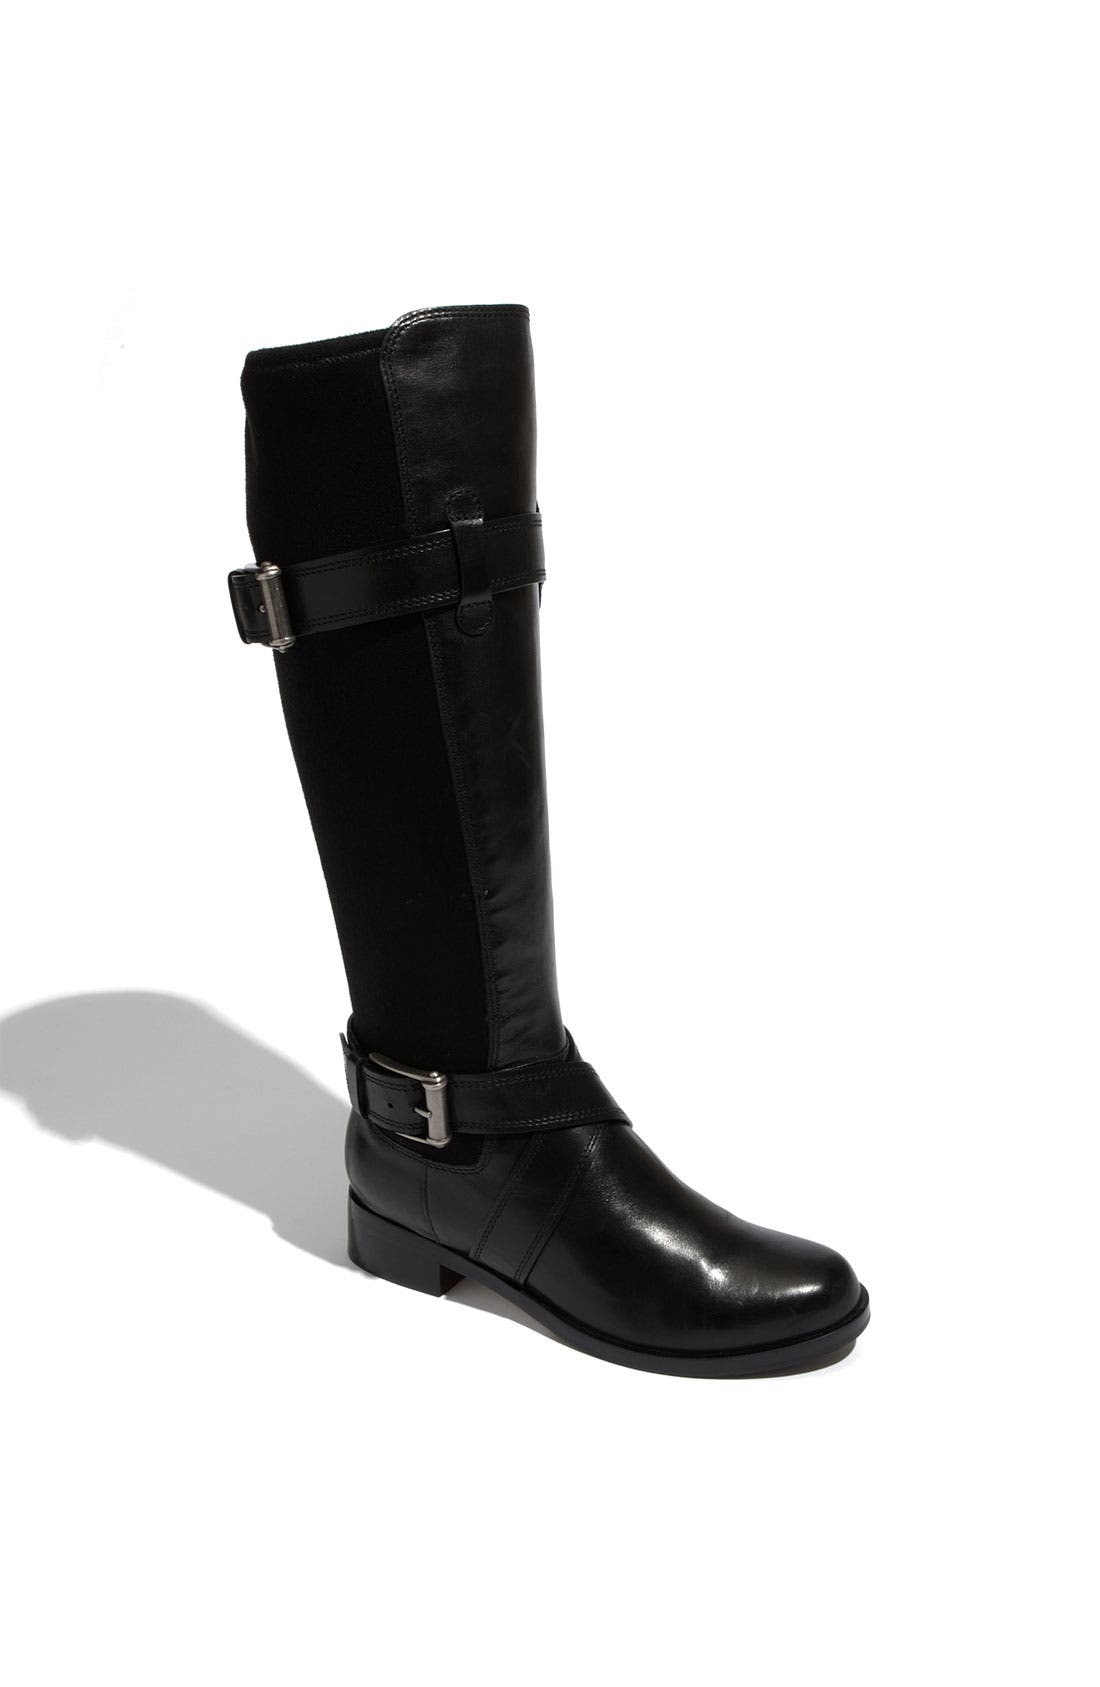 Main Image - Cole Haan 'Air Whitley' Buckle Strap Boot